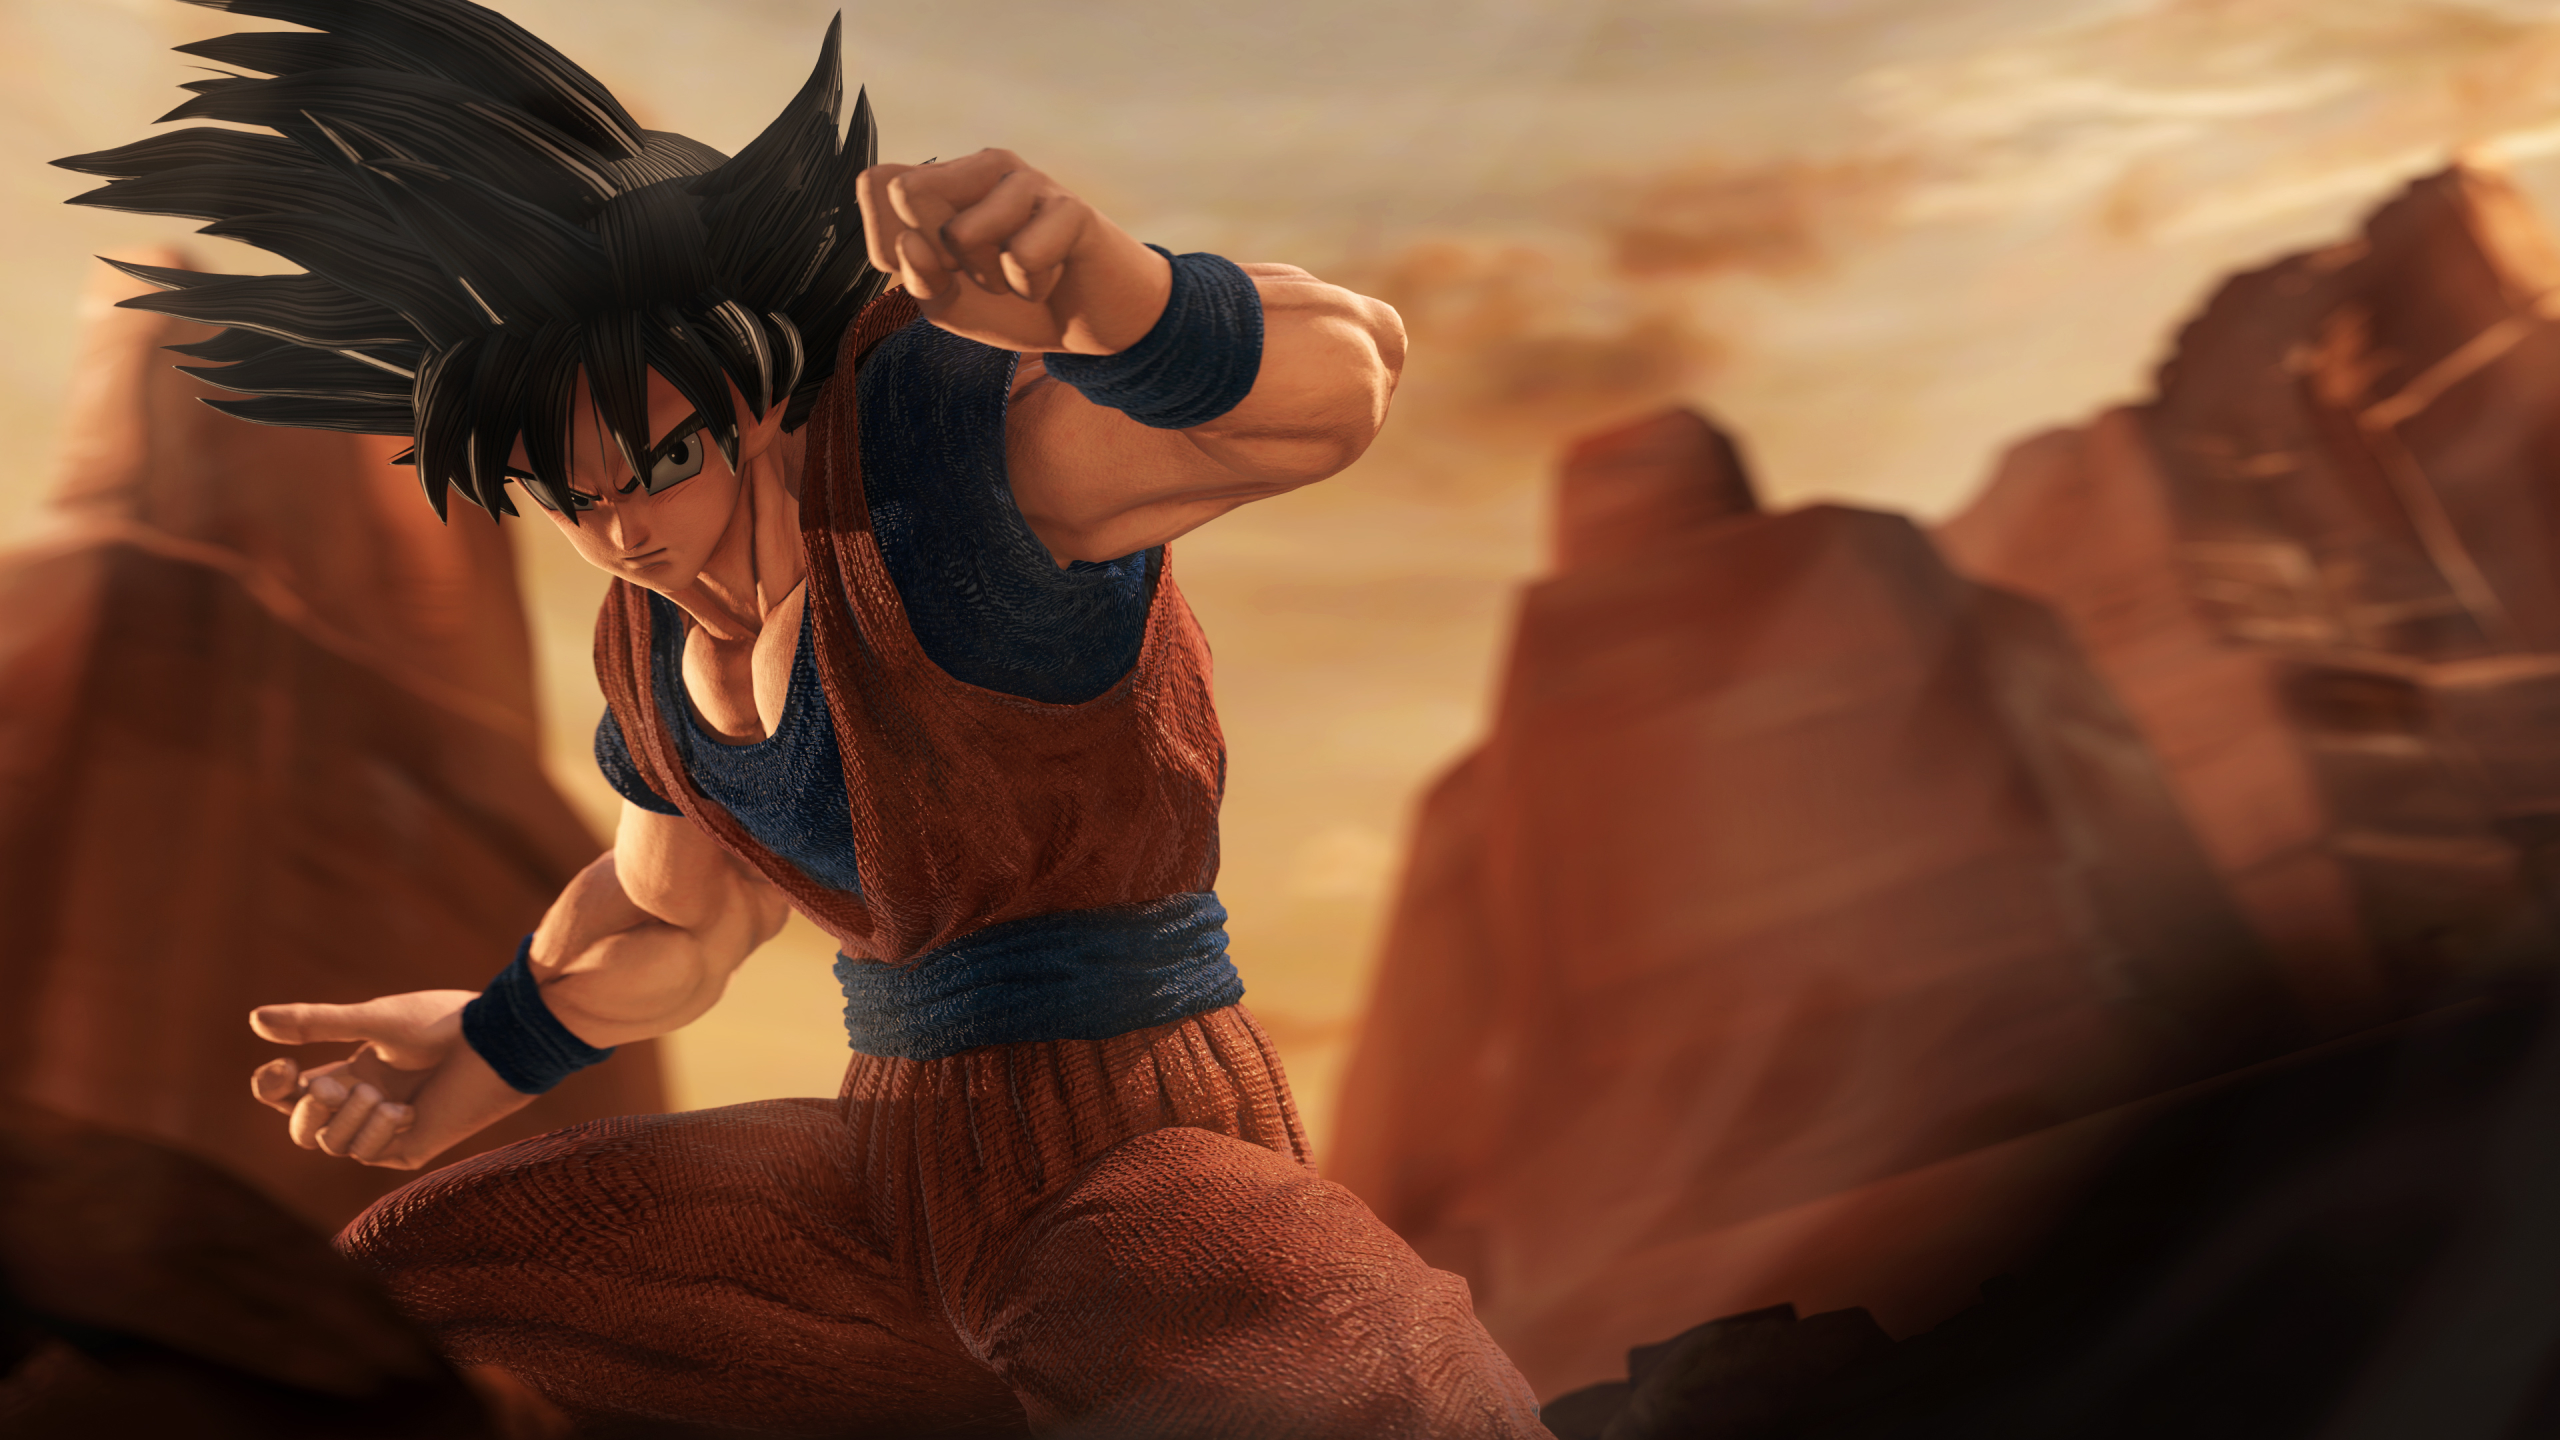 2560x1440 Goku 1440p Resolution Wallpaper Hd Anime 4k